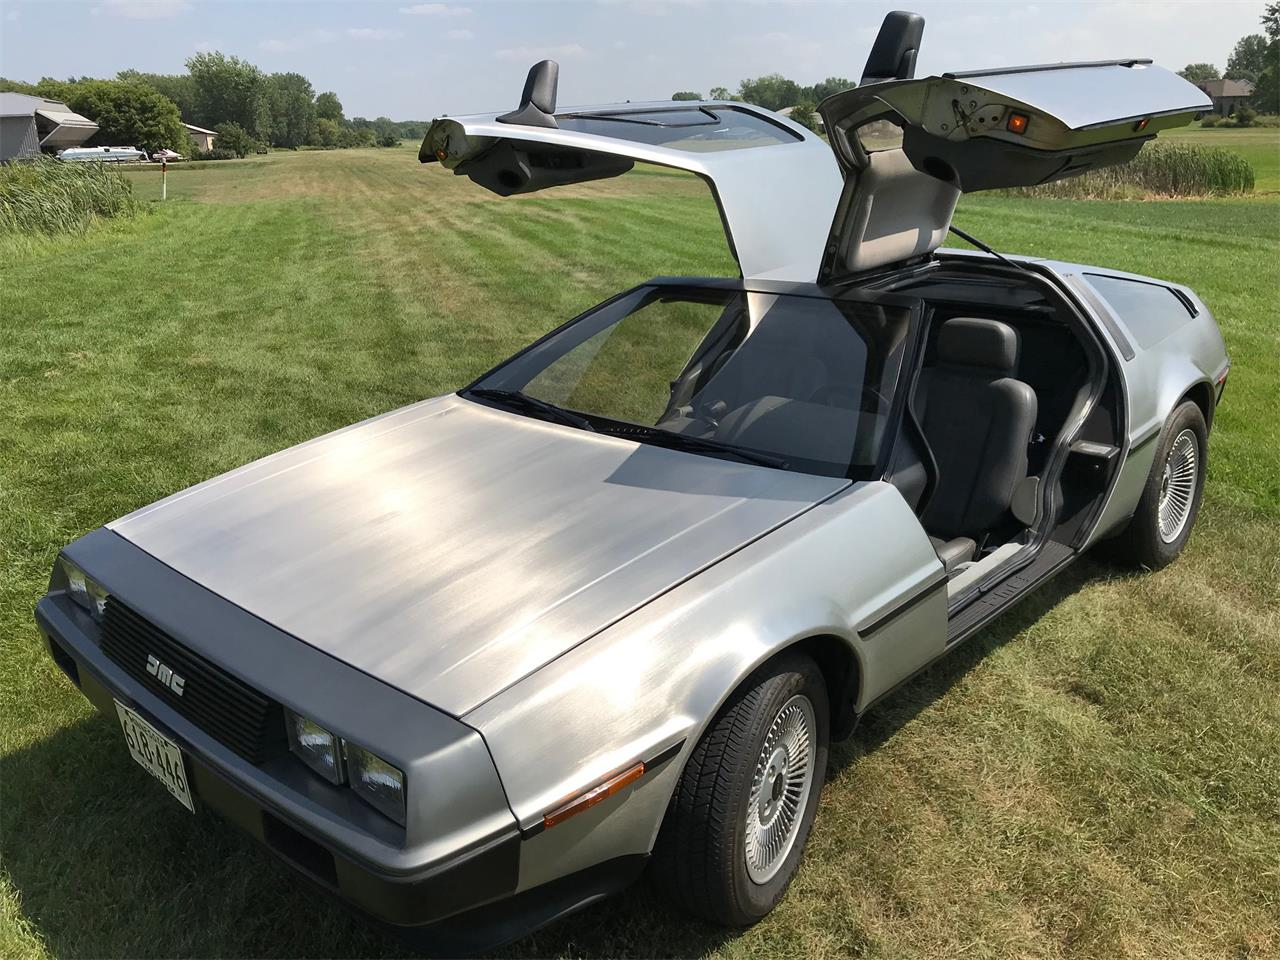 Large Picture of 1981 DeLorean DMC-12 located in Lino Lakes Minnesota Offered by a Private Seller - OG4Z